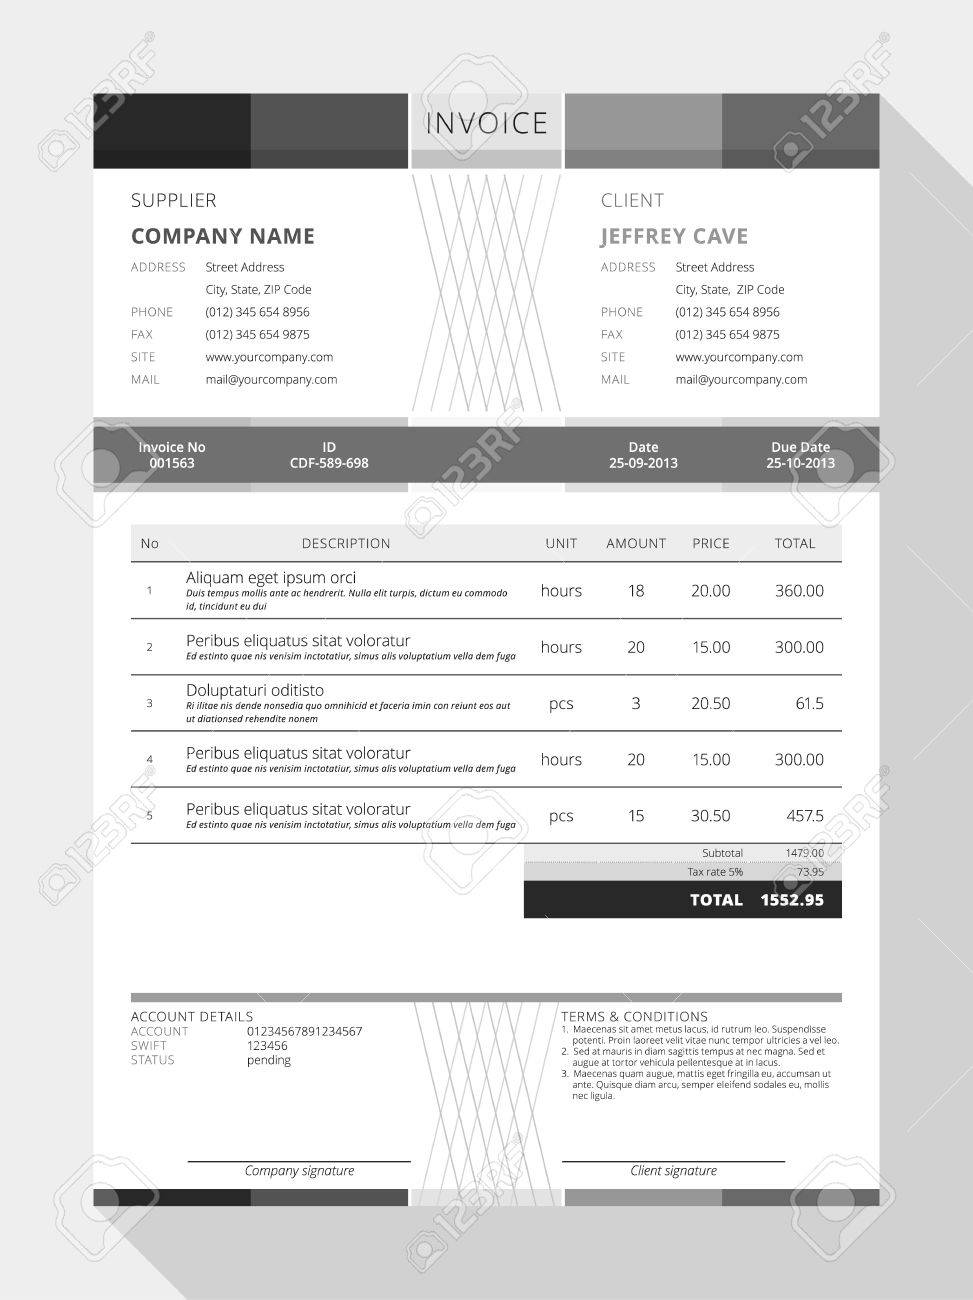 Aaaaeroincus  Personable Design An Invoice  Professional Graphic Design Invoice  With Interesting Vector Customizable Invoice Form Template Design Vector   Design An Invoice With Awesome Invoice And Packing List Also How To Invoice Clients In Addition Invoice Making Software Free And Sample Invoices For Professional Services As Well As Terms And Conditions Invoice Additionally Templates For Receipts And Invoices From Happytomco With Aaaaeroincus  Interesting Design An Invoice  Professional Graphic Design Invoice  With Awesome Vector Customizable Invoice Form Template Design Vector   Design An Invoice And Personable Invoice And Packing List Also How To Invoice Clients In Addition Invoice Making Software Free From Happytomco